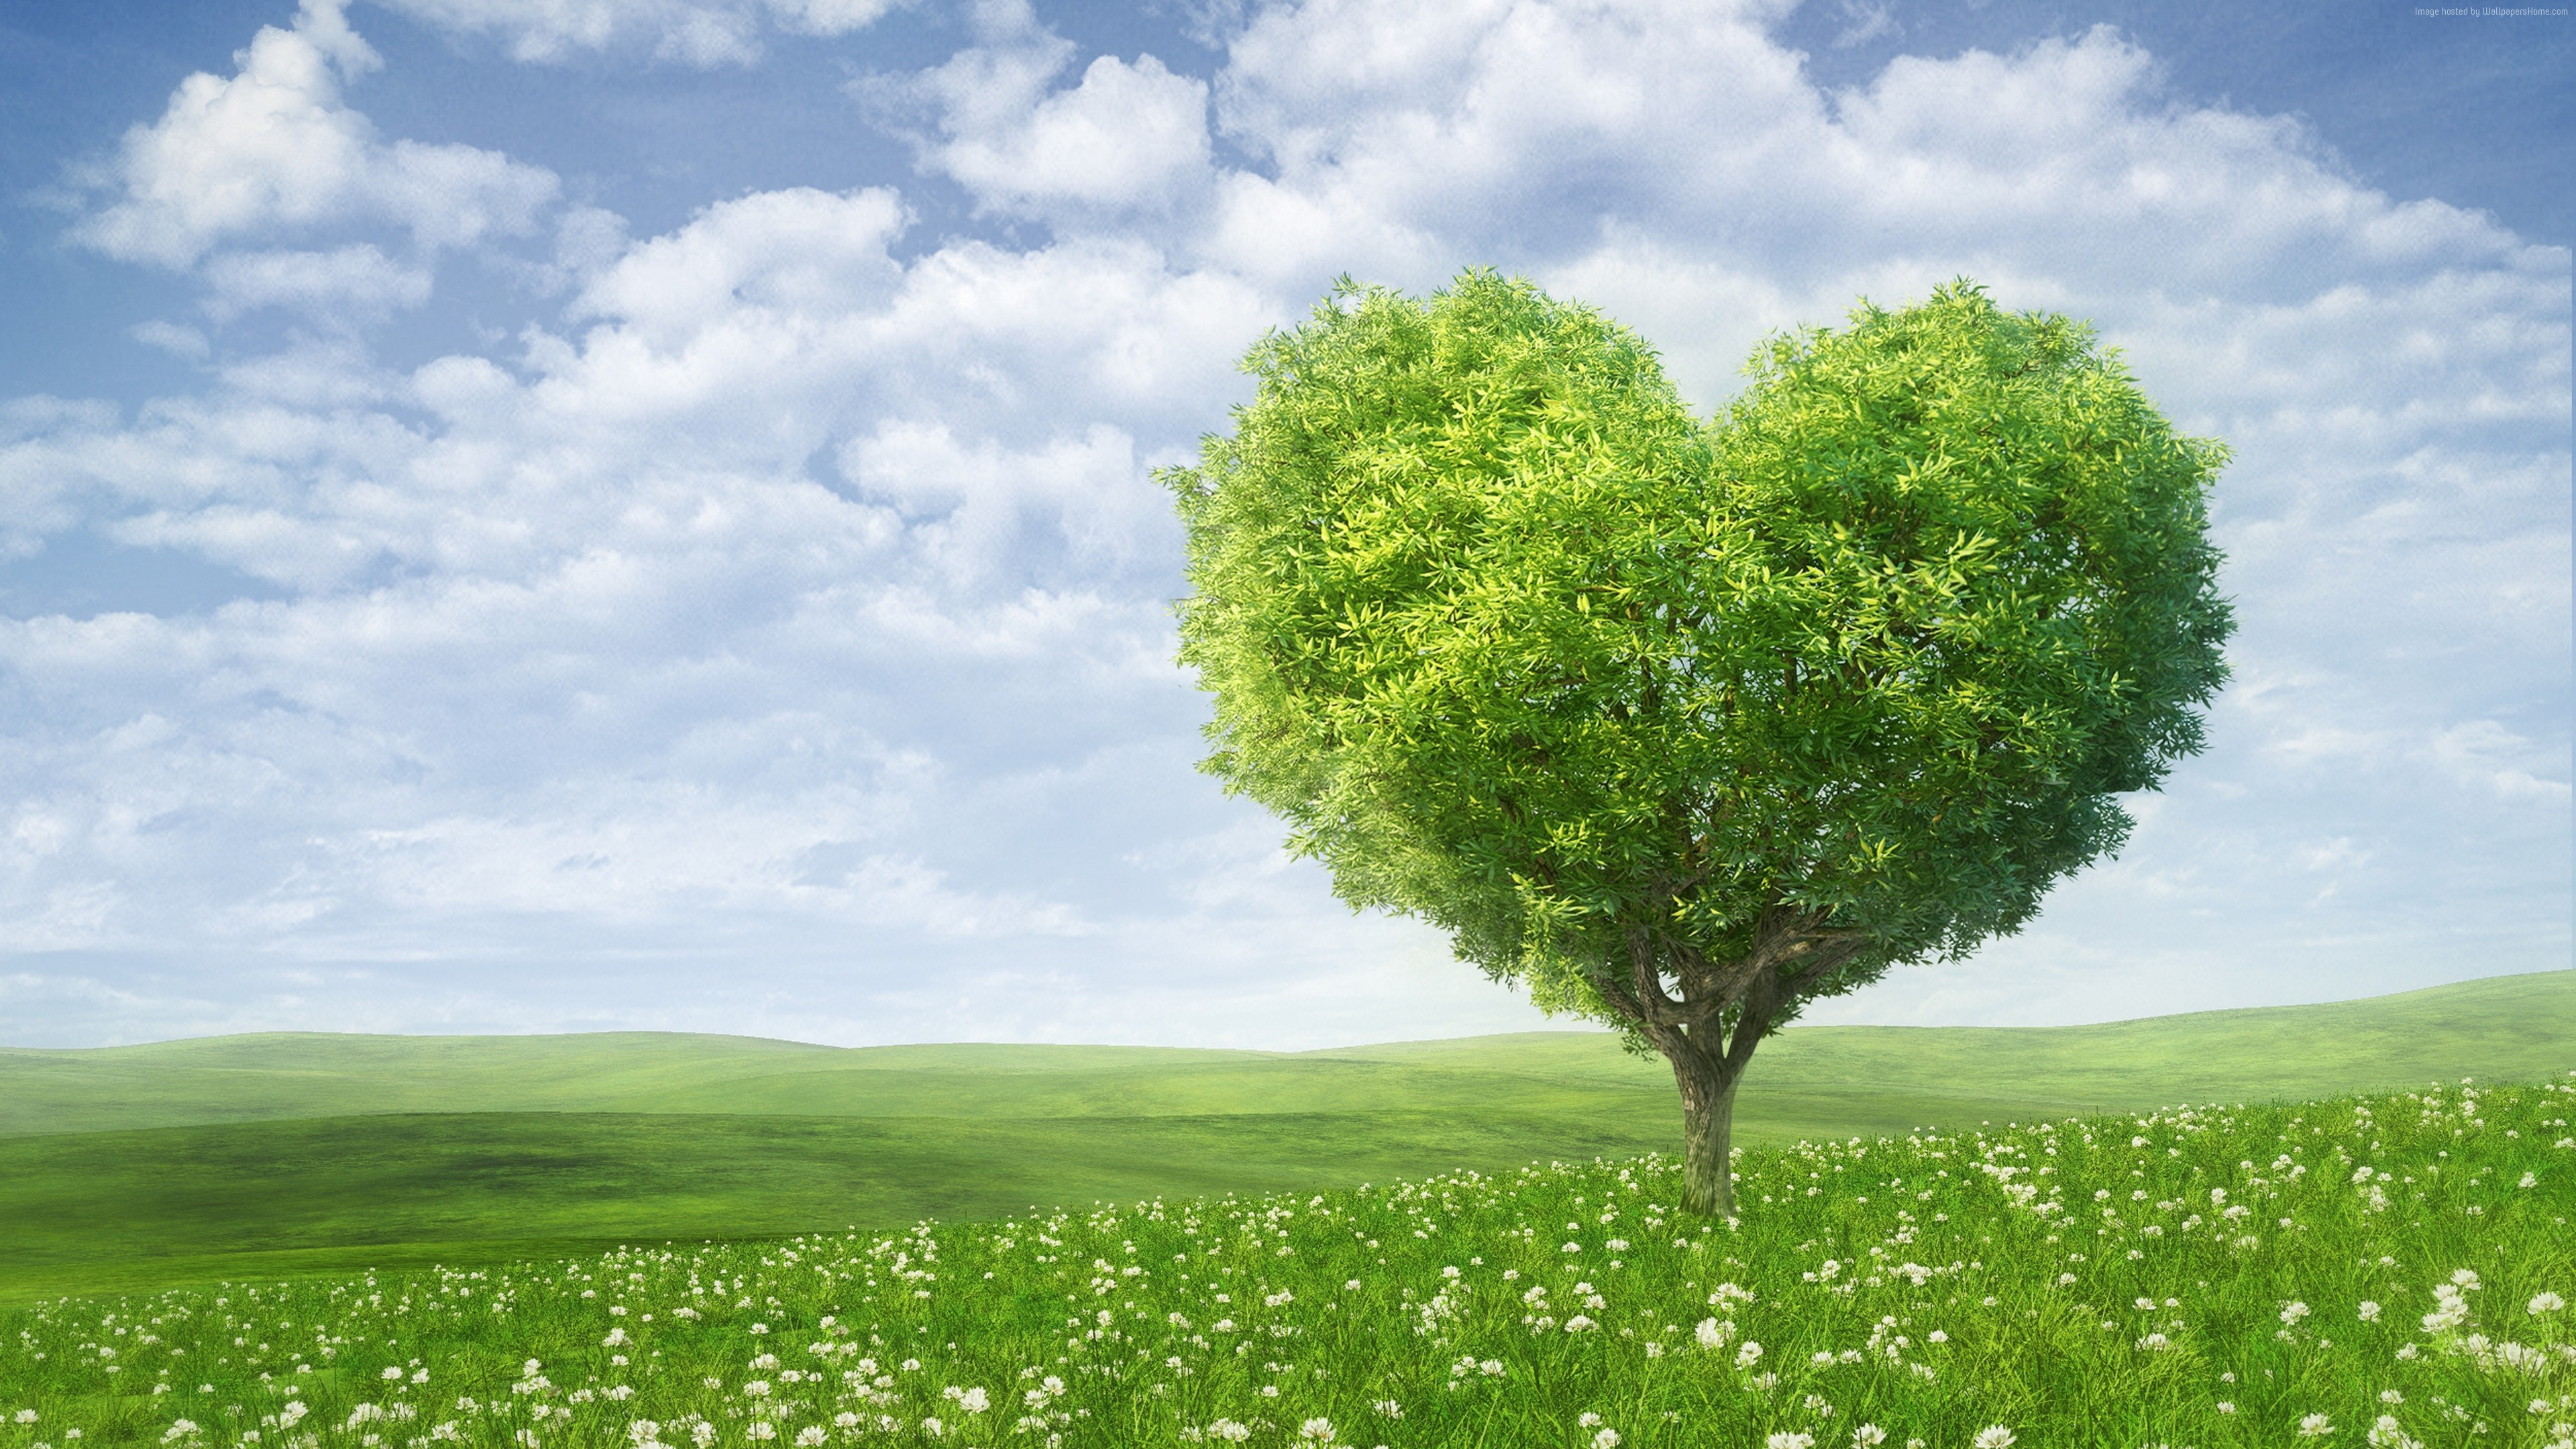 Stock Images love image, heart, tree, 5k, Stock Images